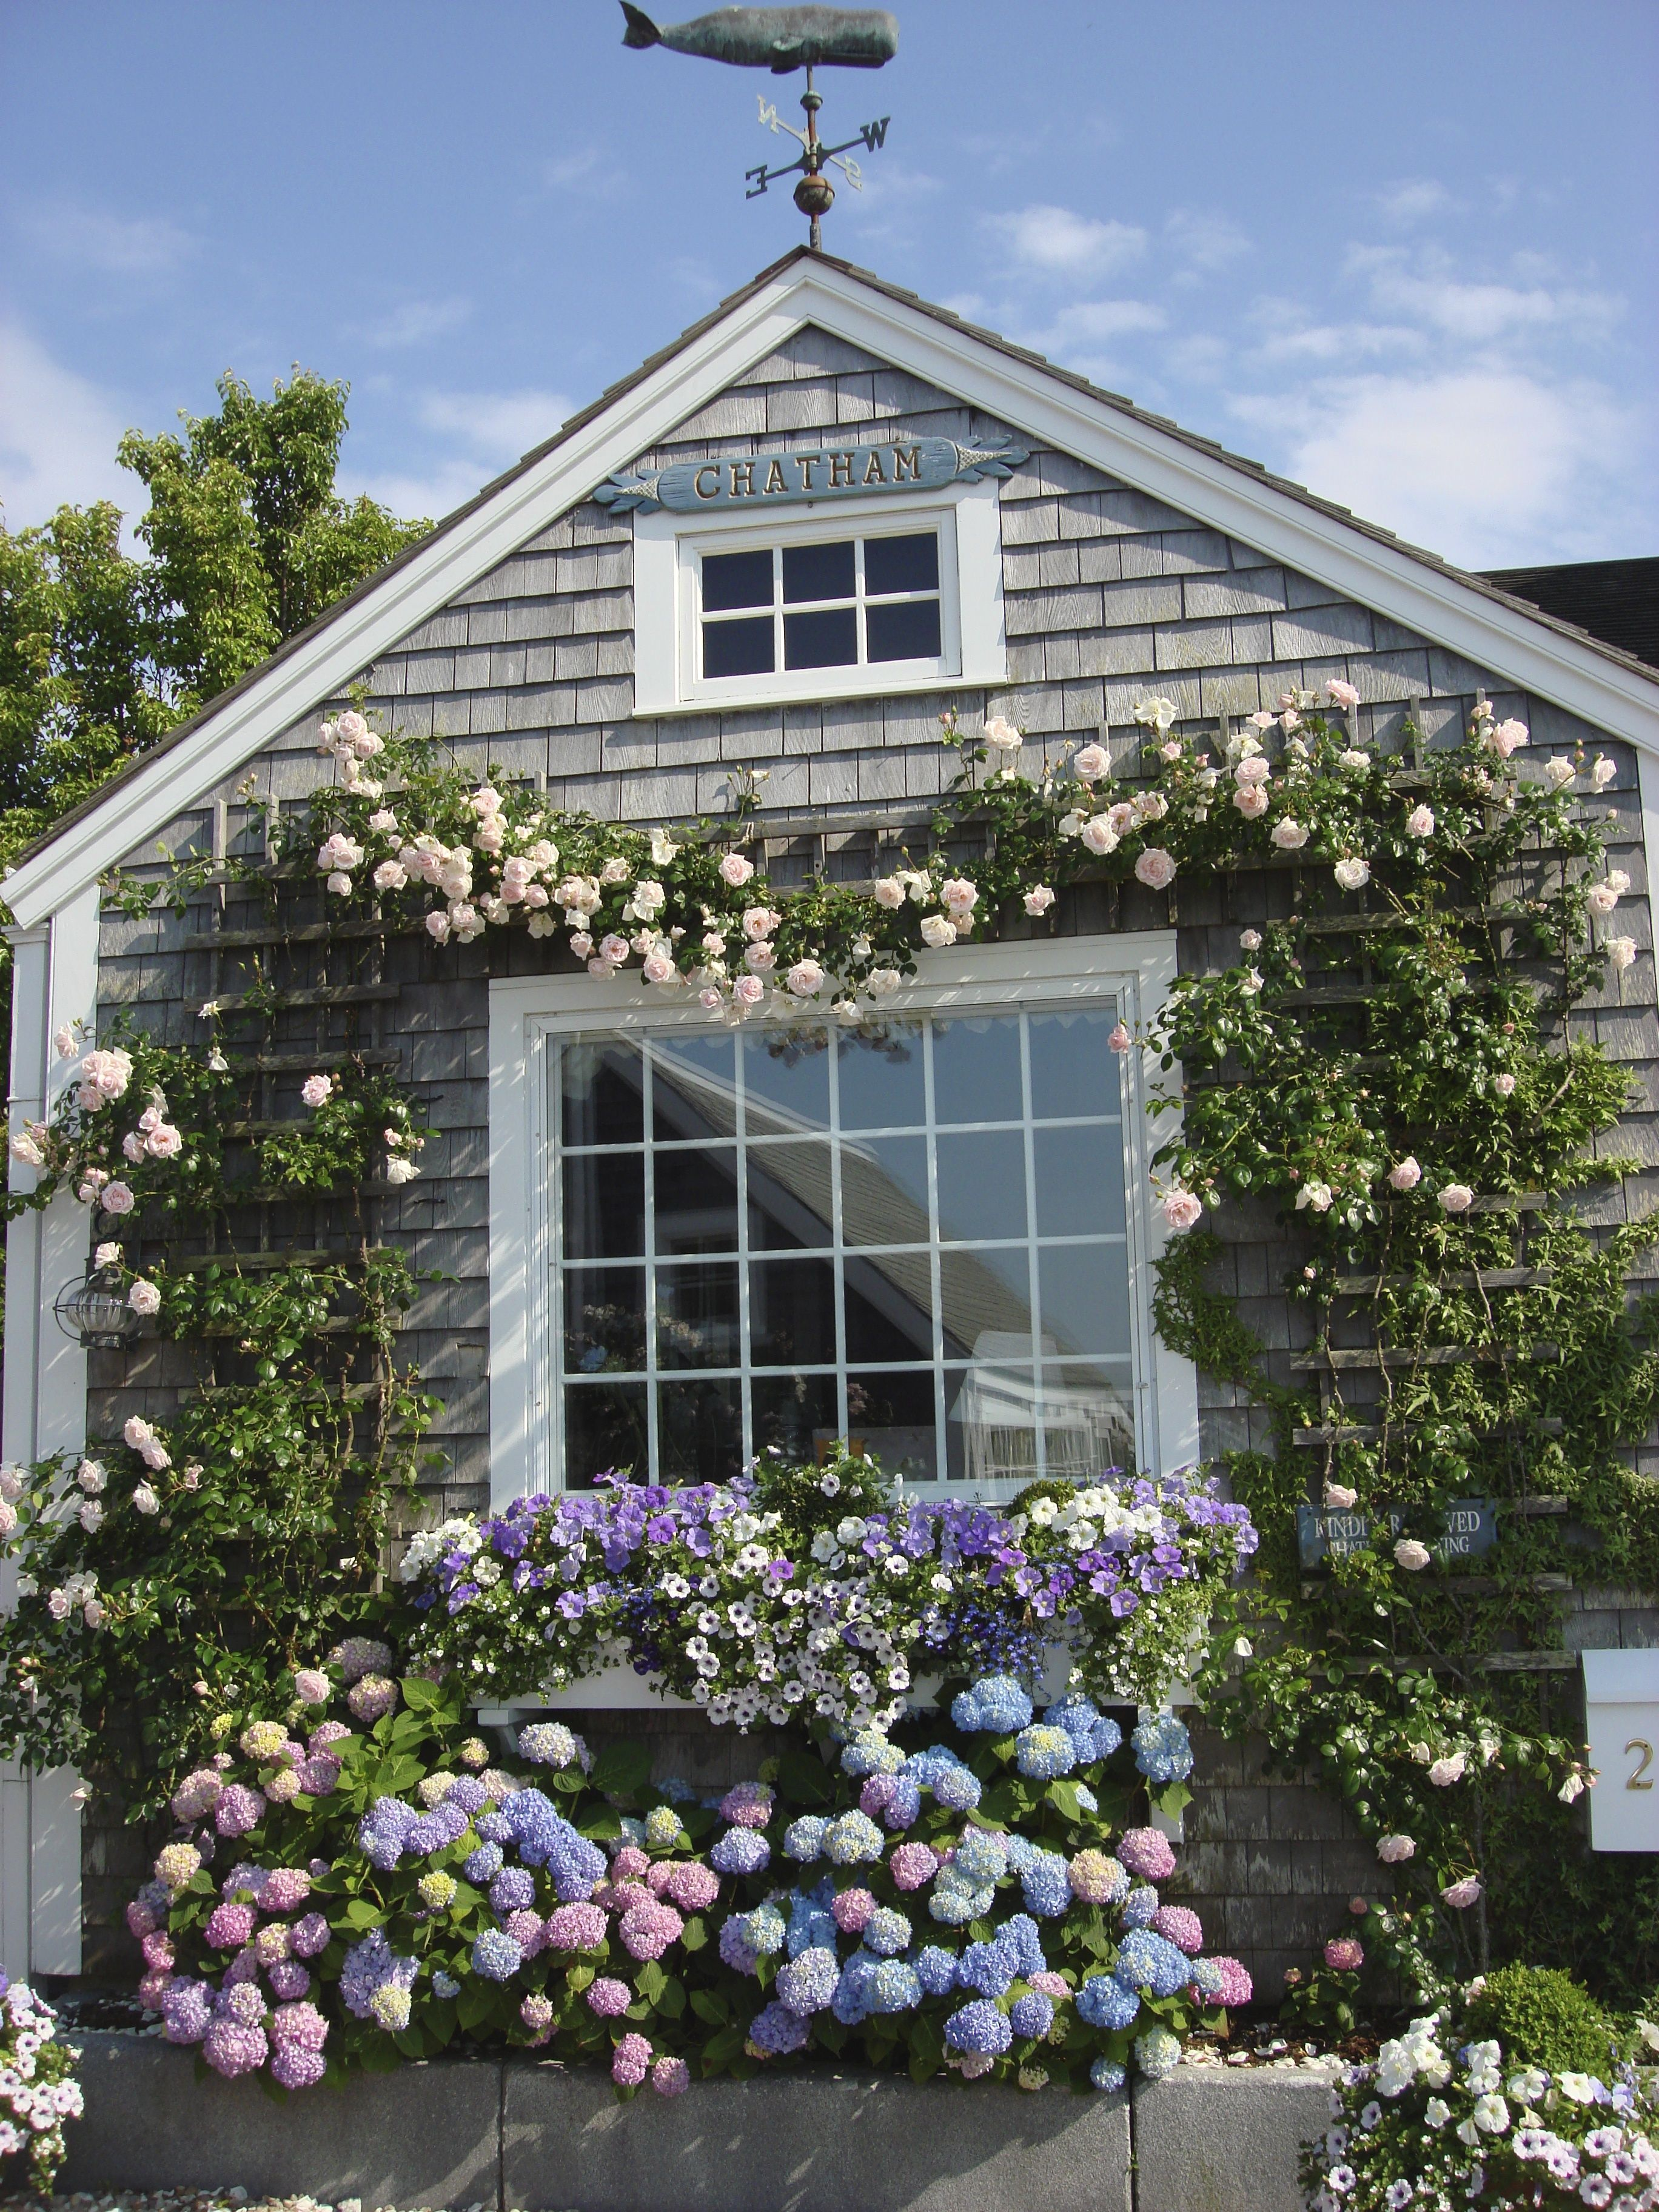 beautiful cottages nantucket bedrooms at property cottage can staying of getaway little see a luxurious about are the range hotel things as harborview lot bit you we that from to hosts weekend